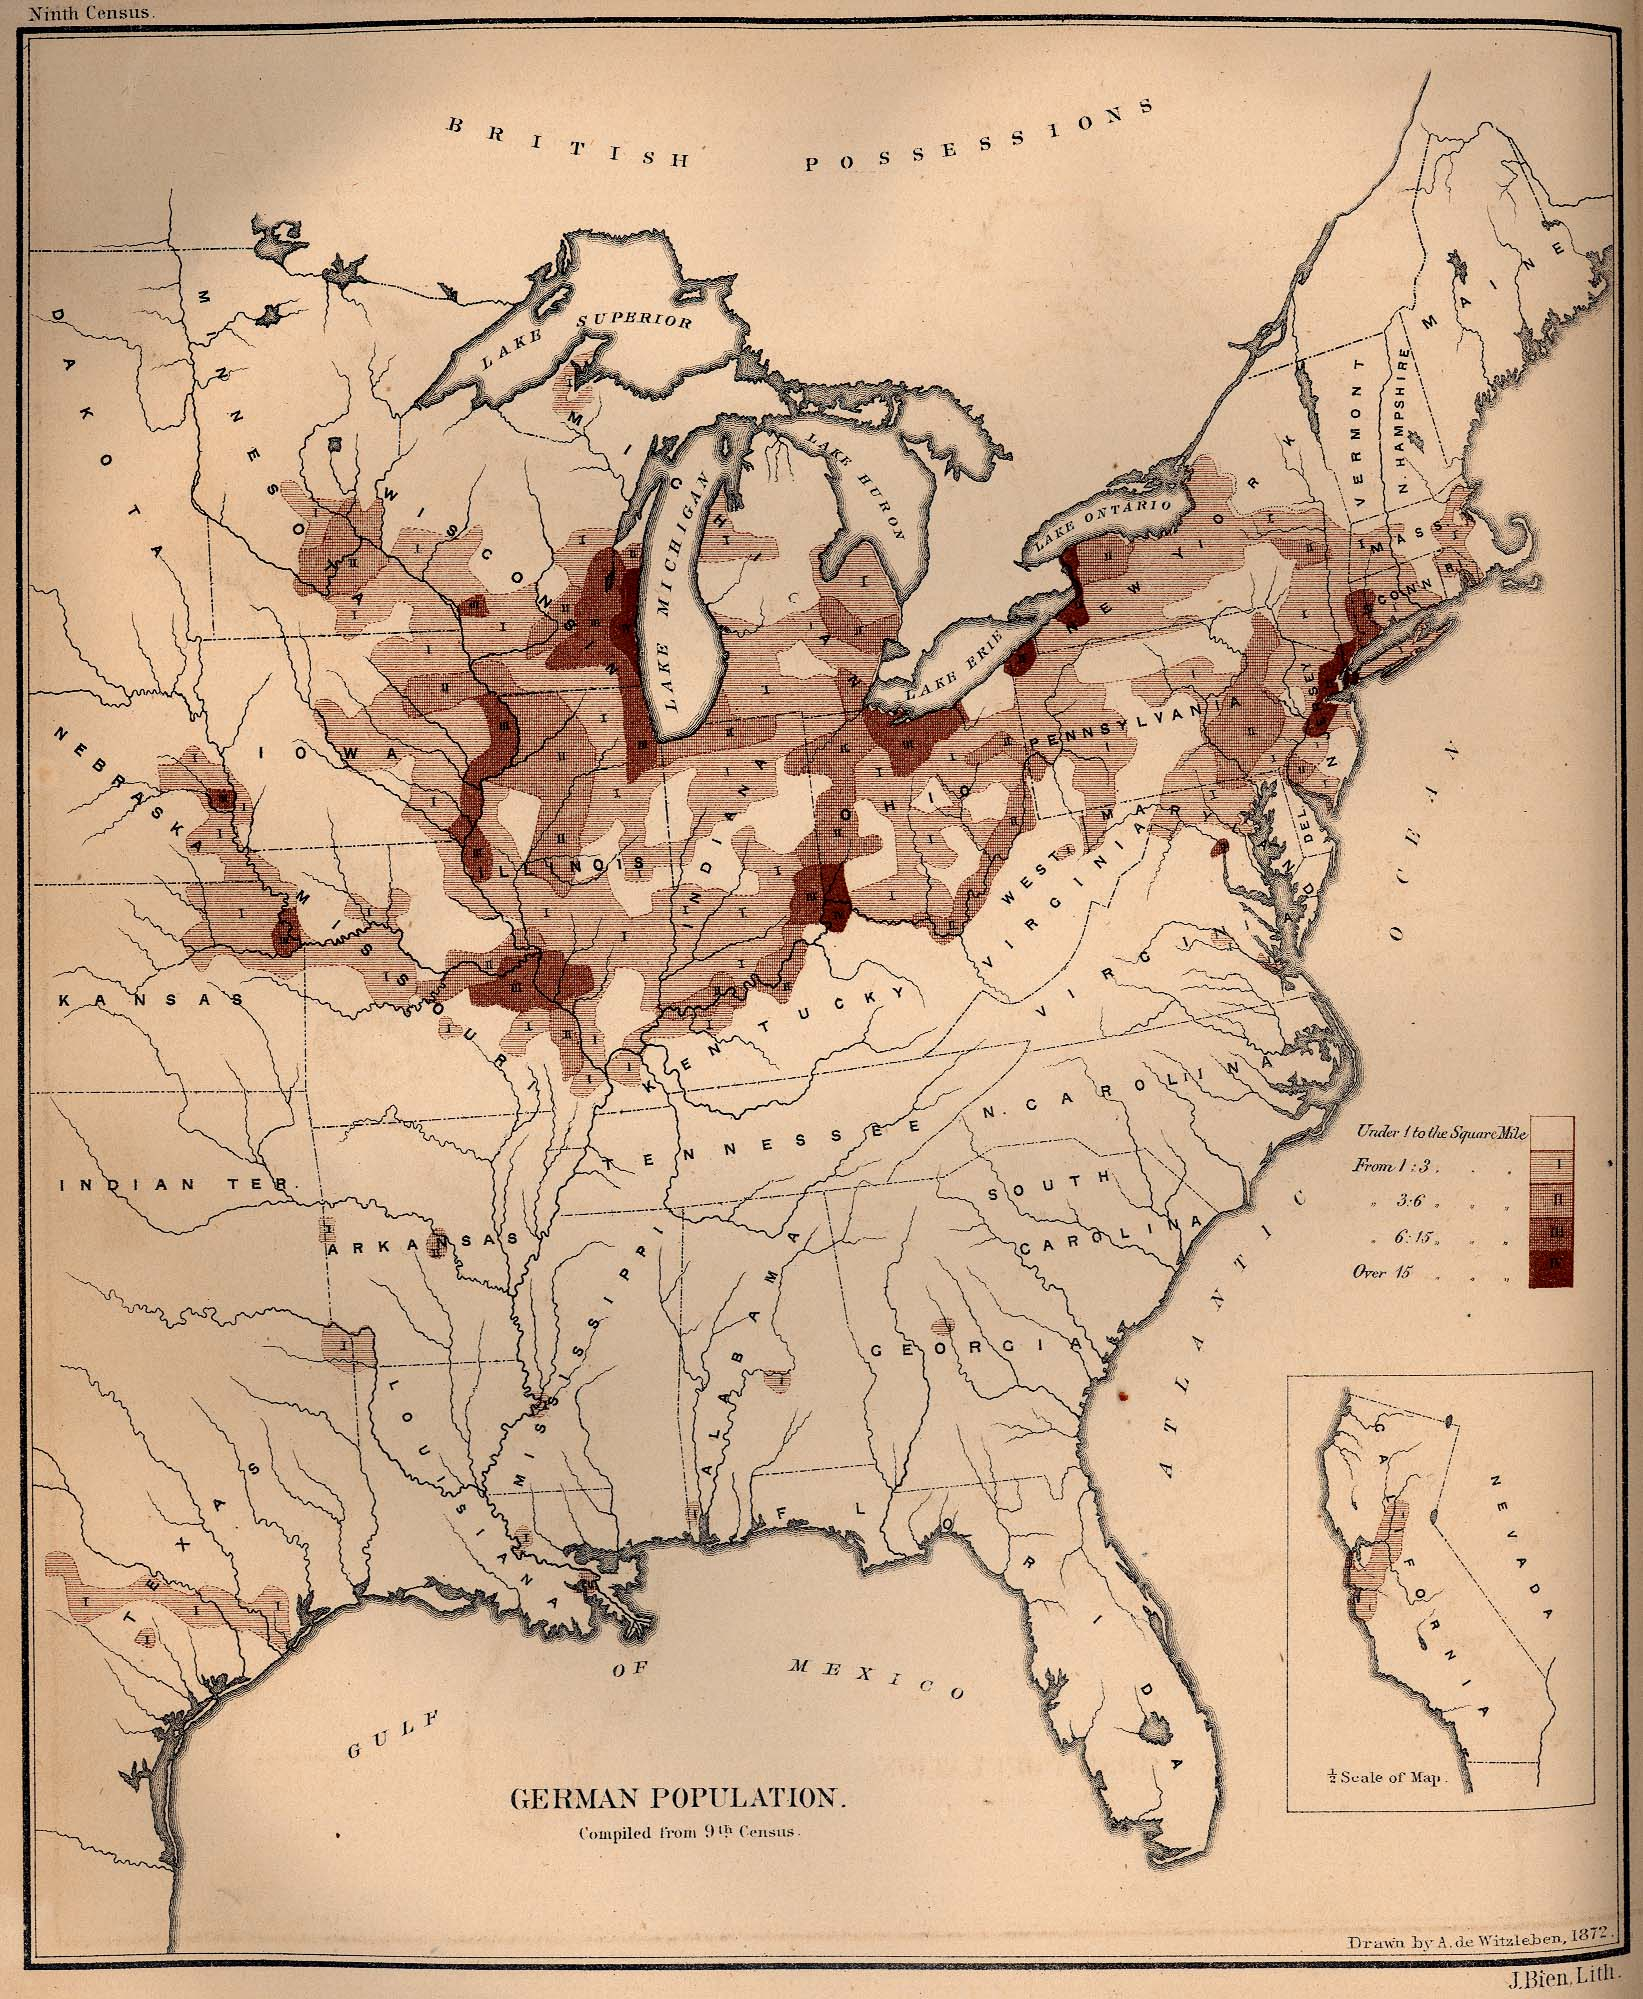 Map of the German Population in the United States 1872